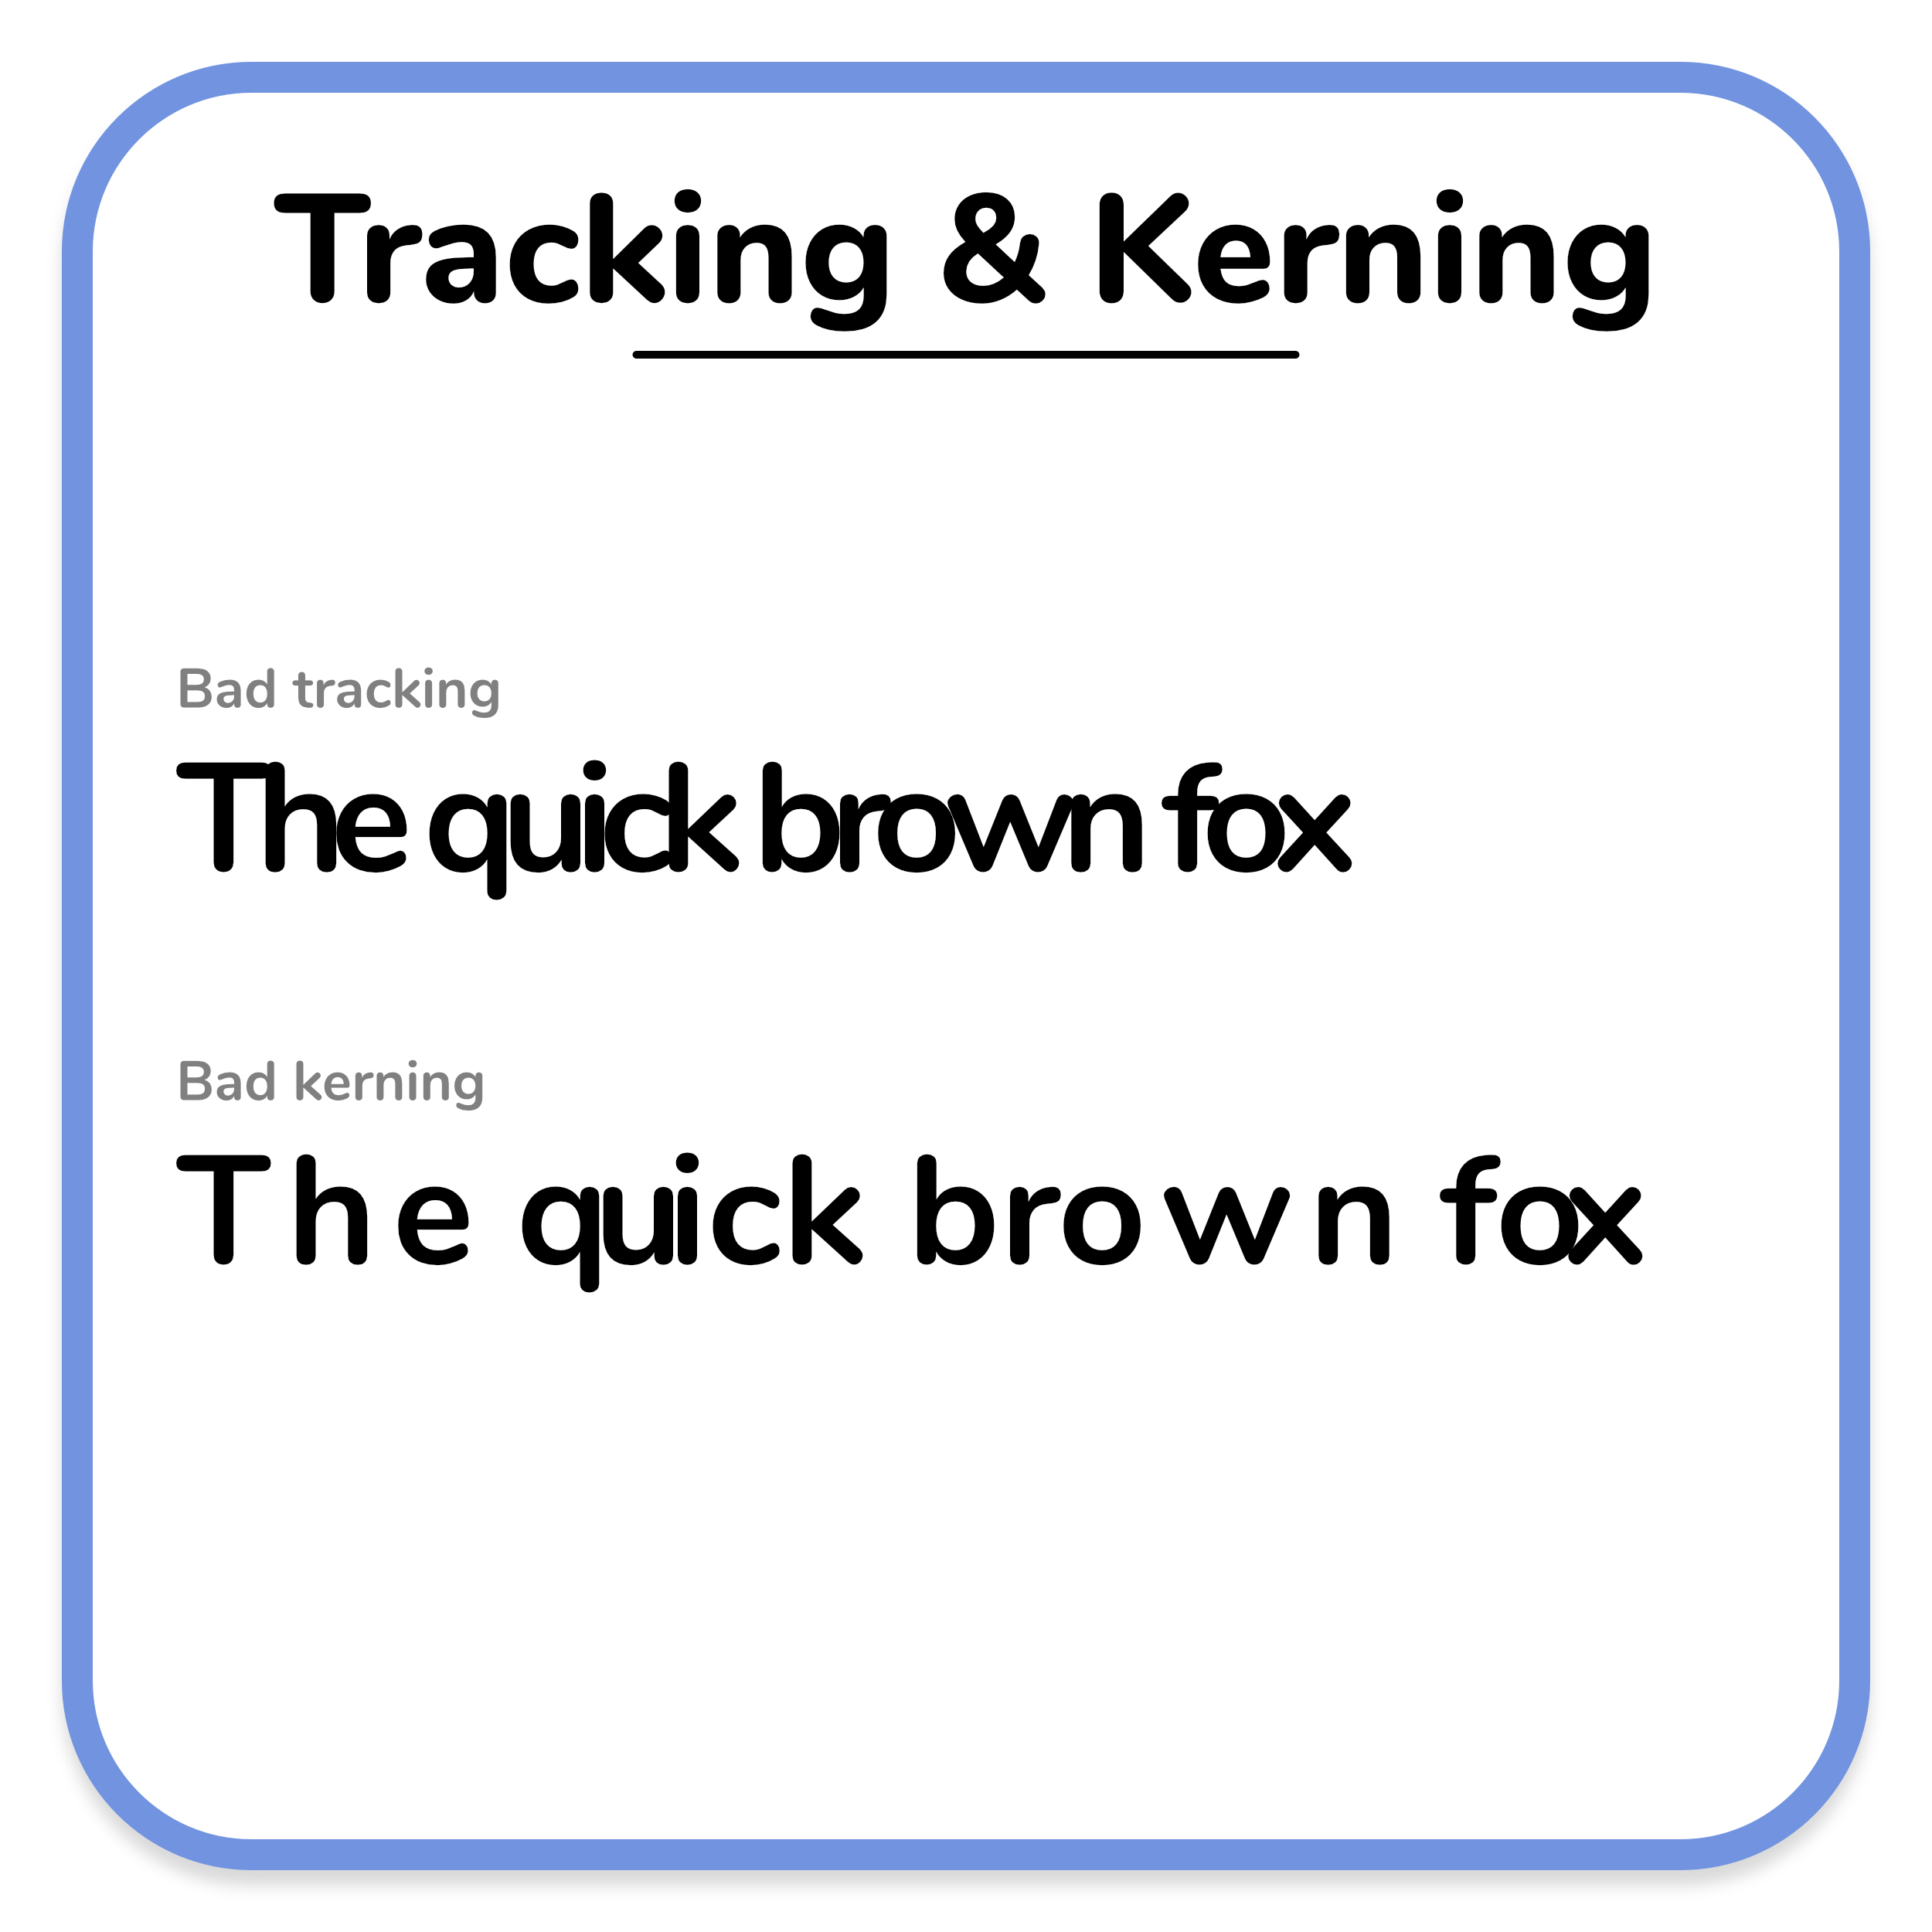 A text example of bad tracking and kerning, shown by spacing letters too close and too far from each other.